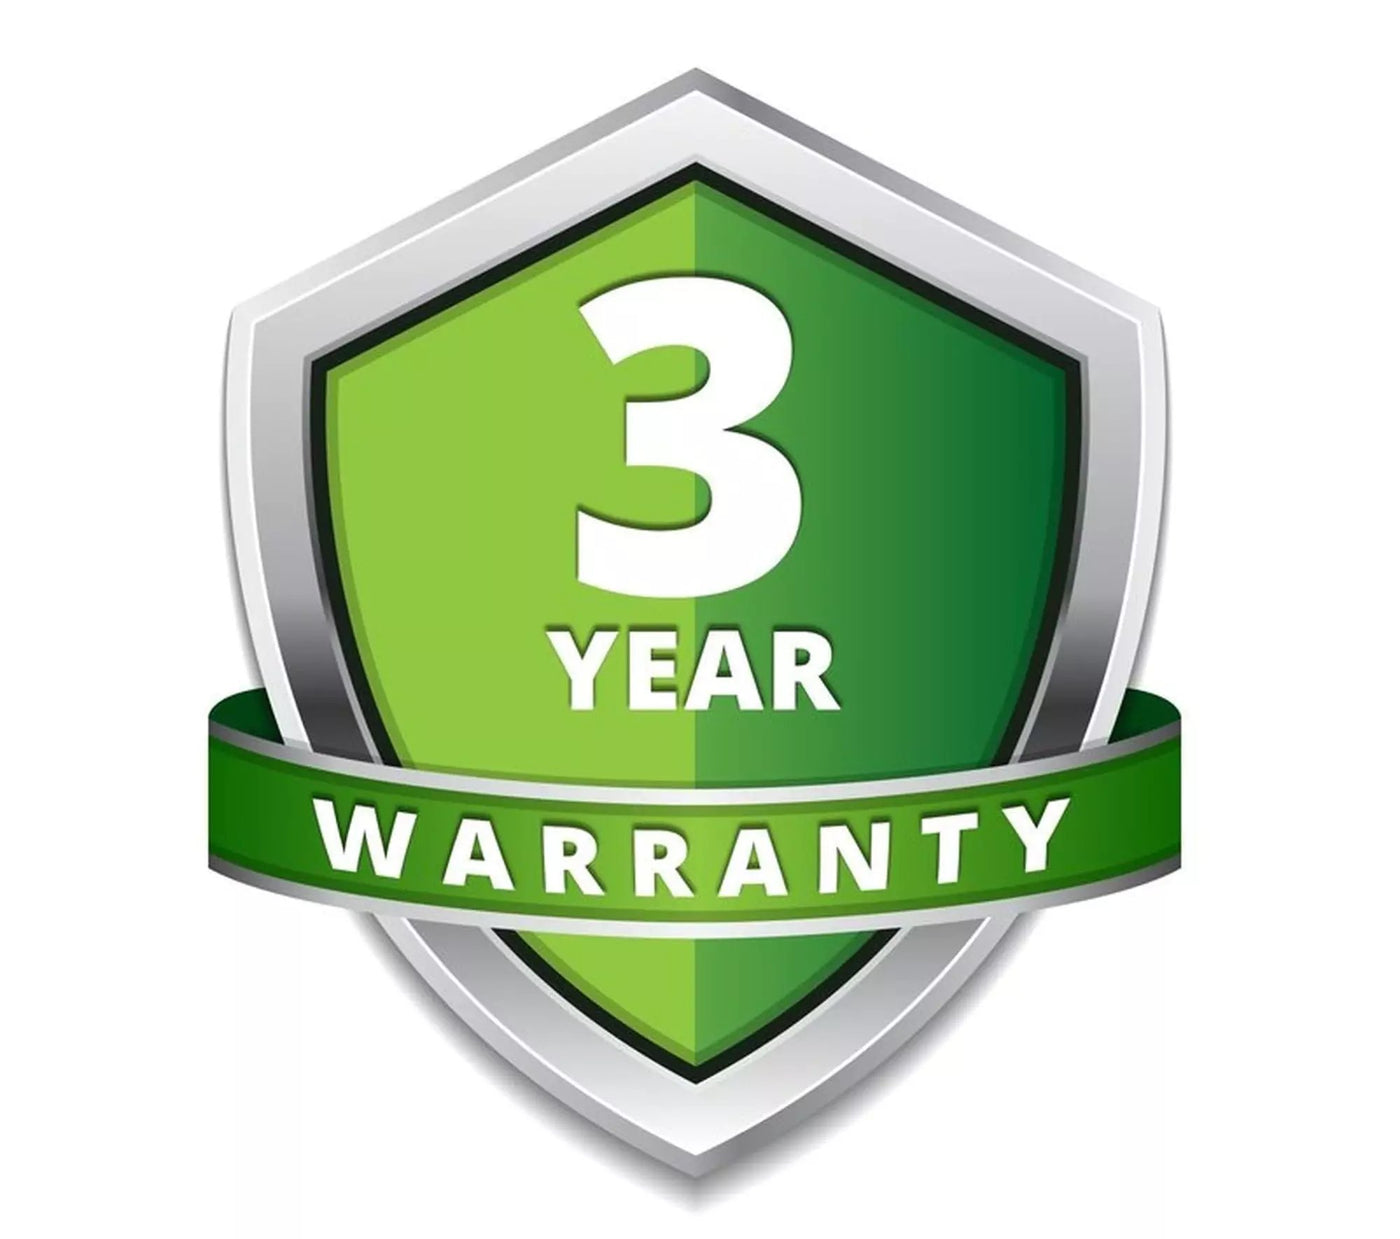 Upsells - 3 Year Protection Warranty